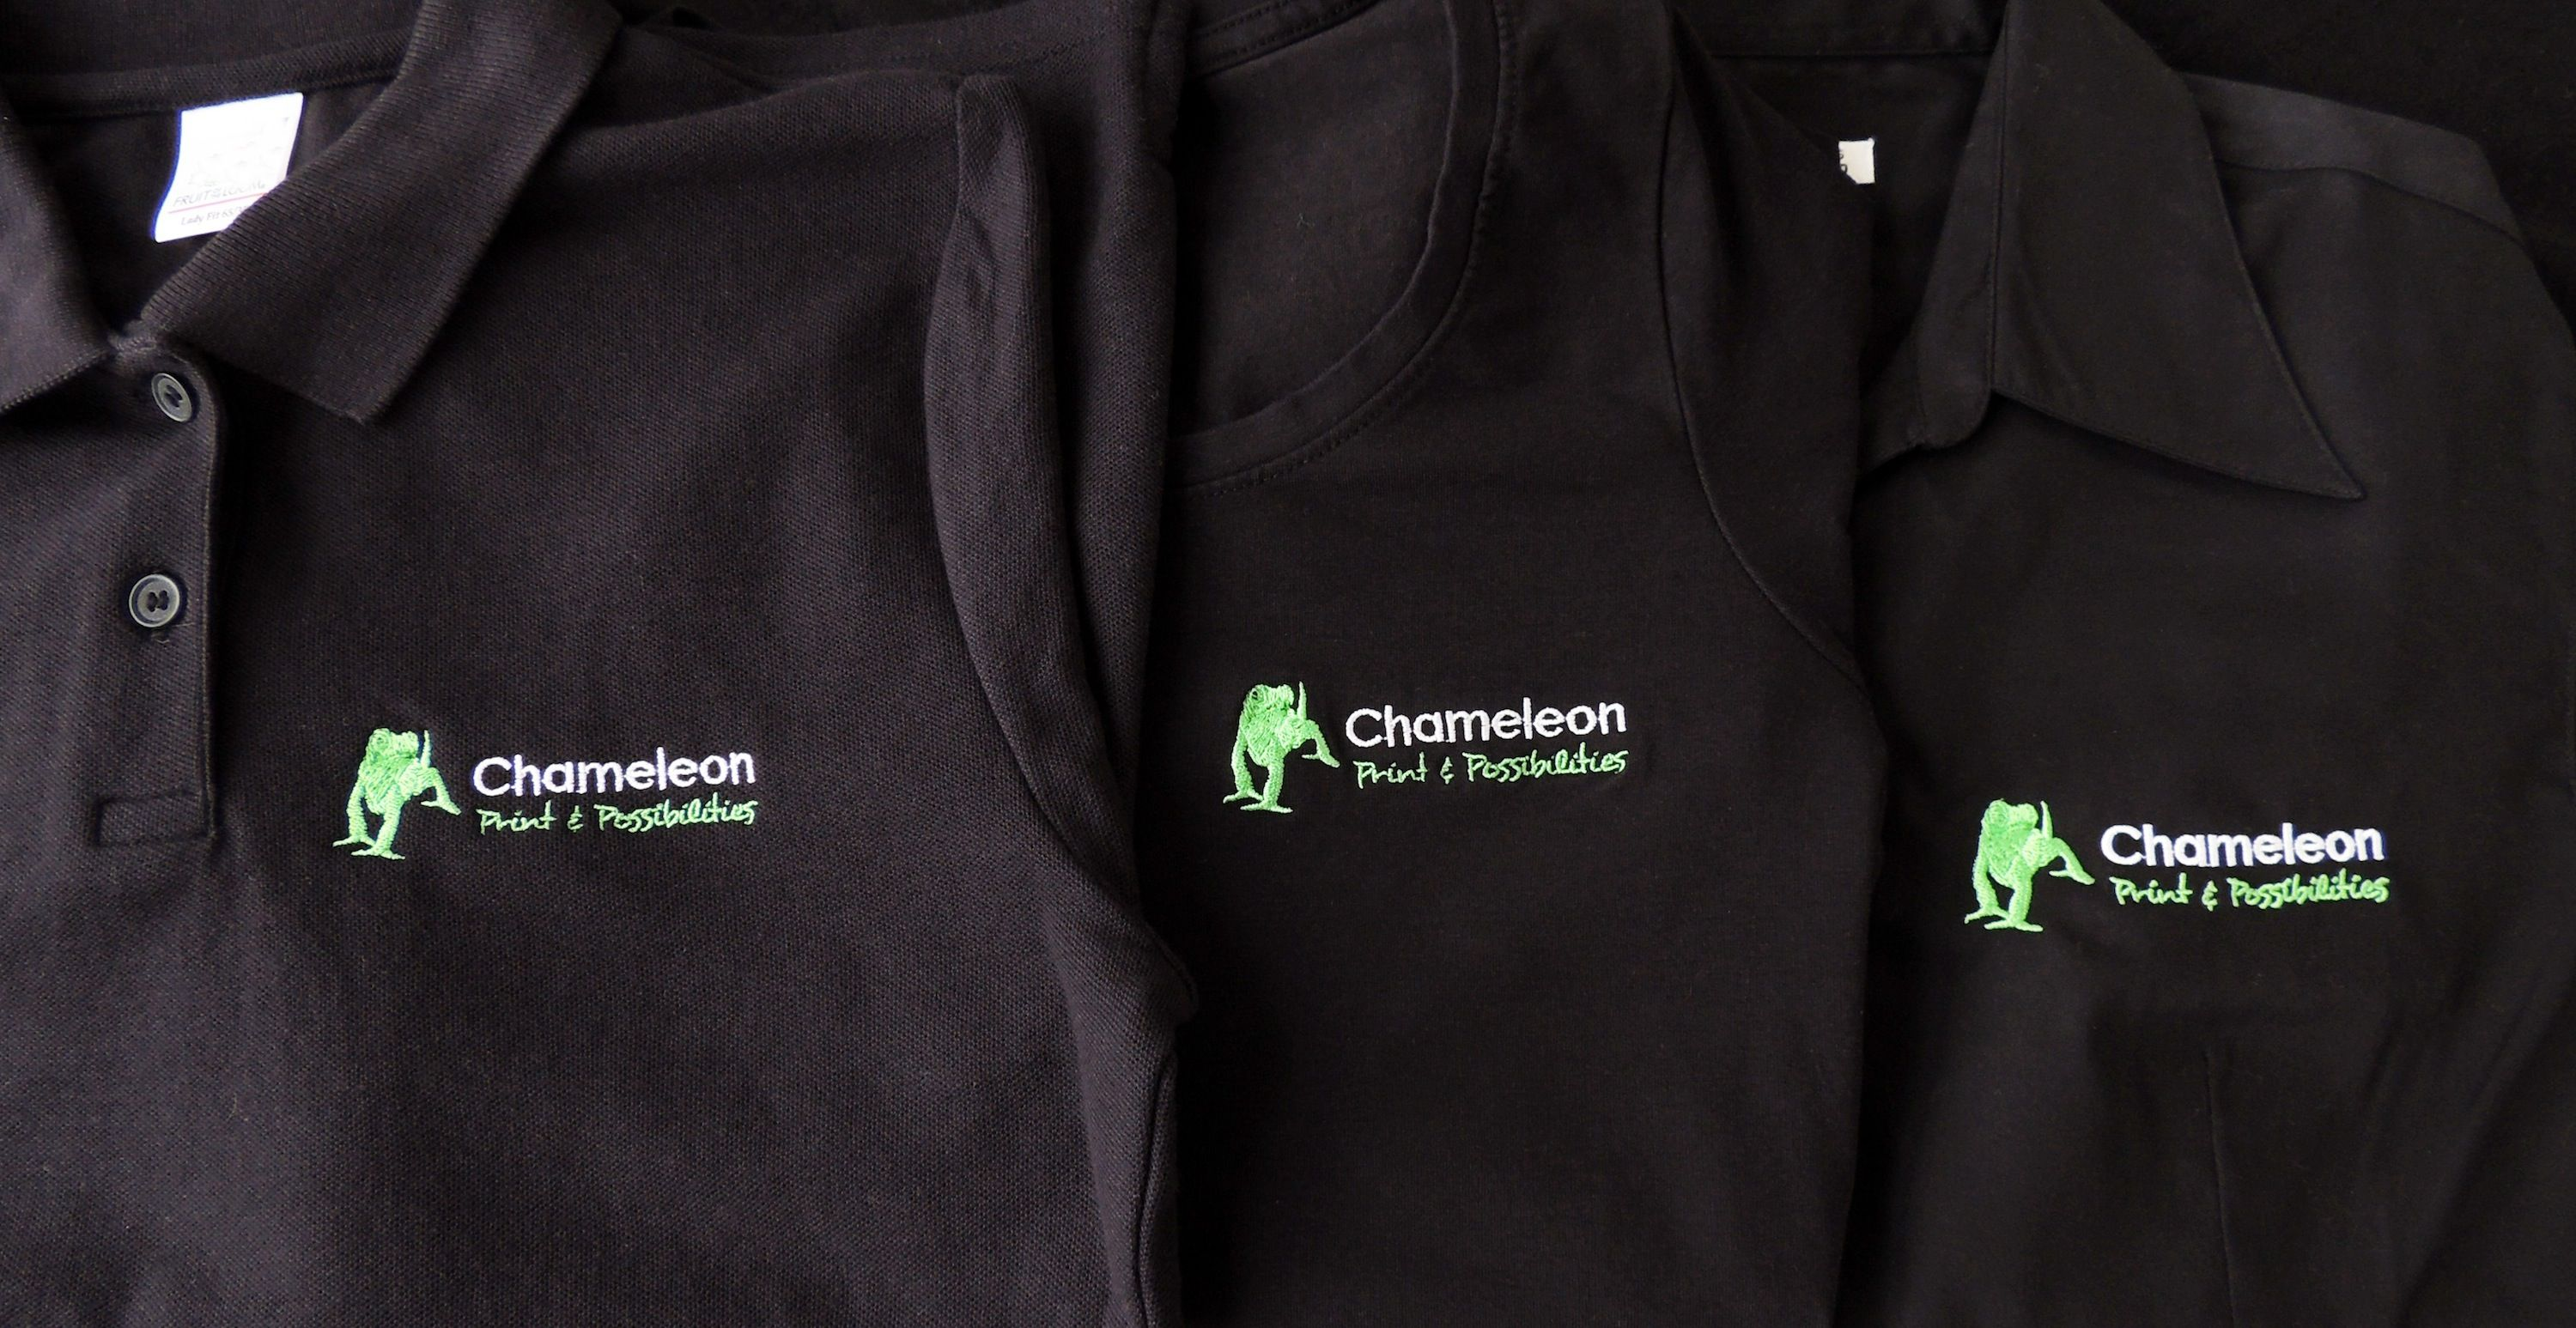 Chameleon Design and Print Embroidered Corporate clothing Polo